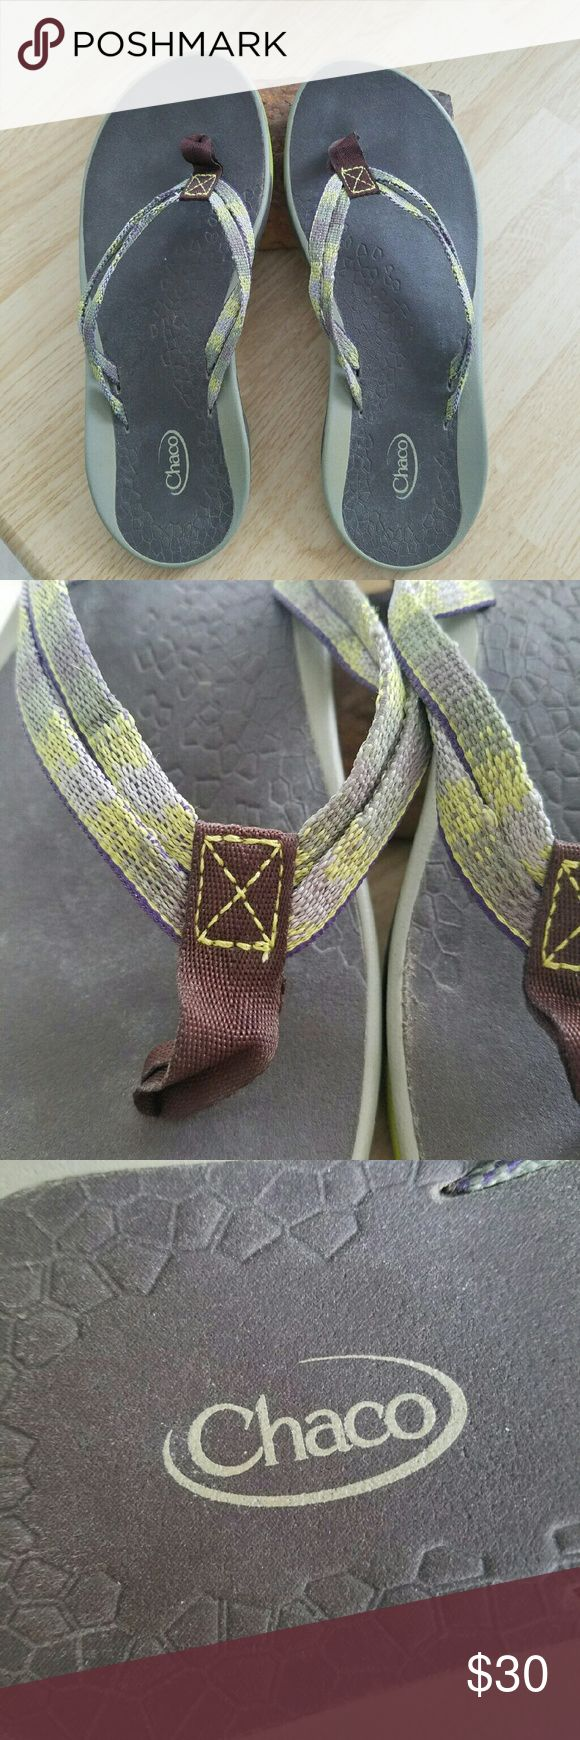 Chaco Sandals Double strap thong sandals. Not often worn. Fits best for narrow foot. Green, grey, purple, brown colors - mostly green though Chaco Shoes Sandals